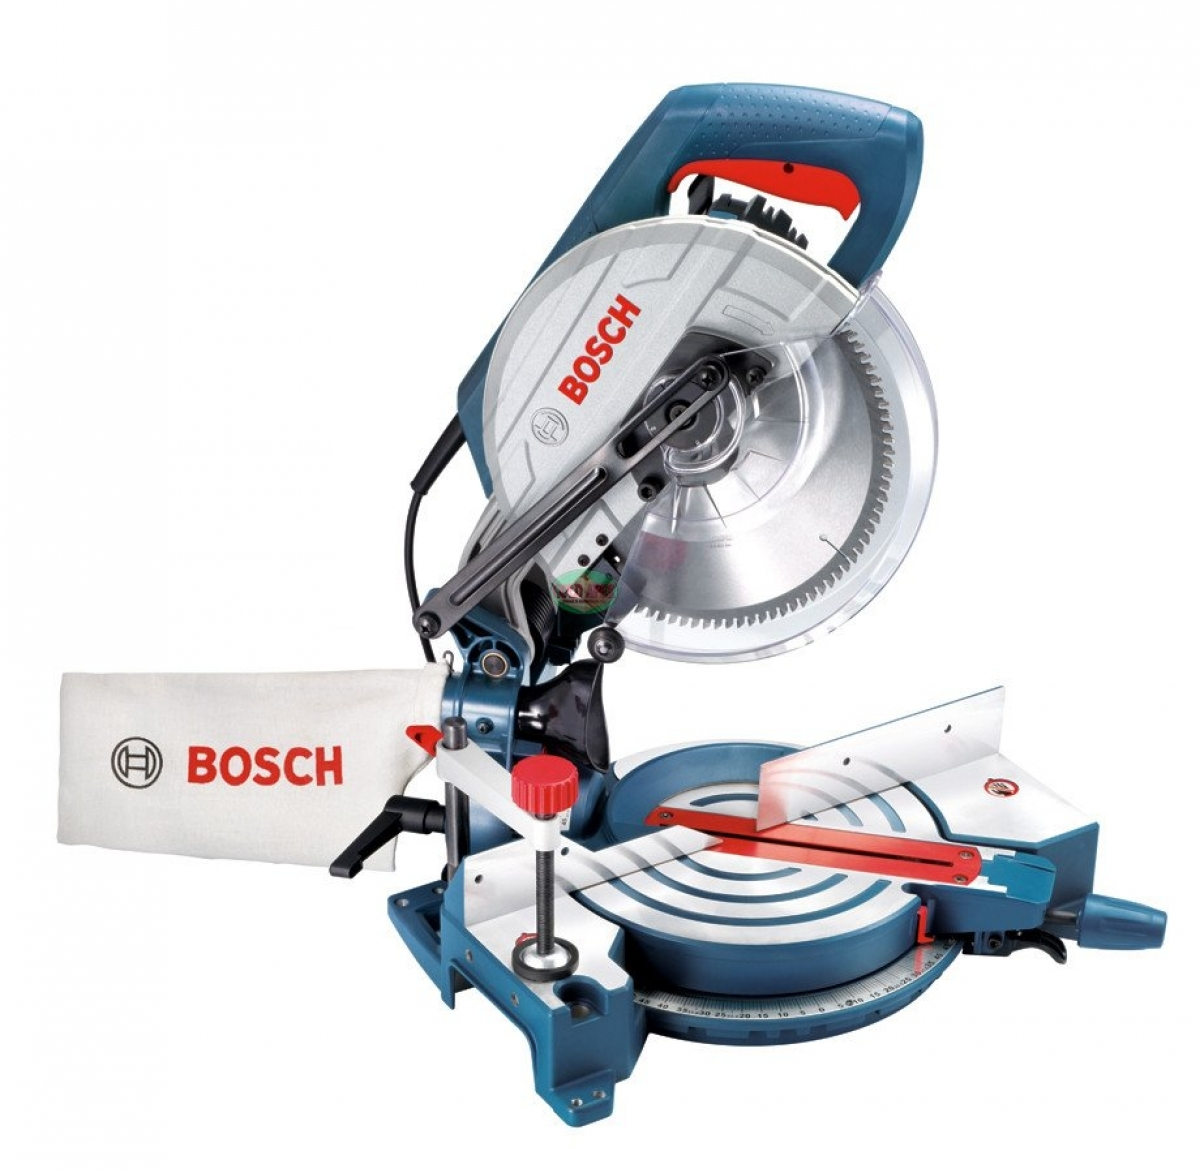 bosch gcm 2 000w 254mm mitre saw my power tools. Black Bedroom Furniture Sets. Home Design Ideas